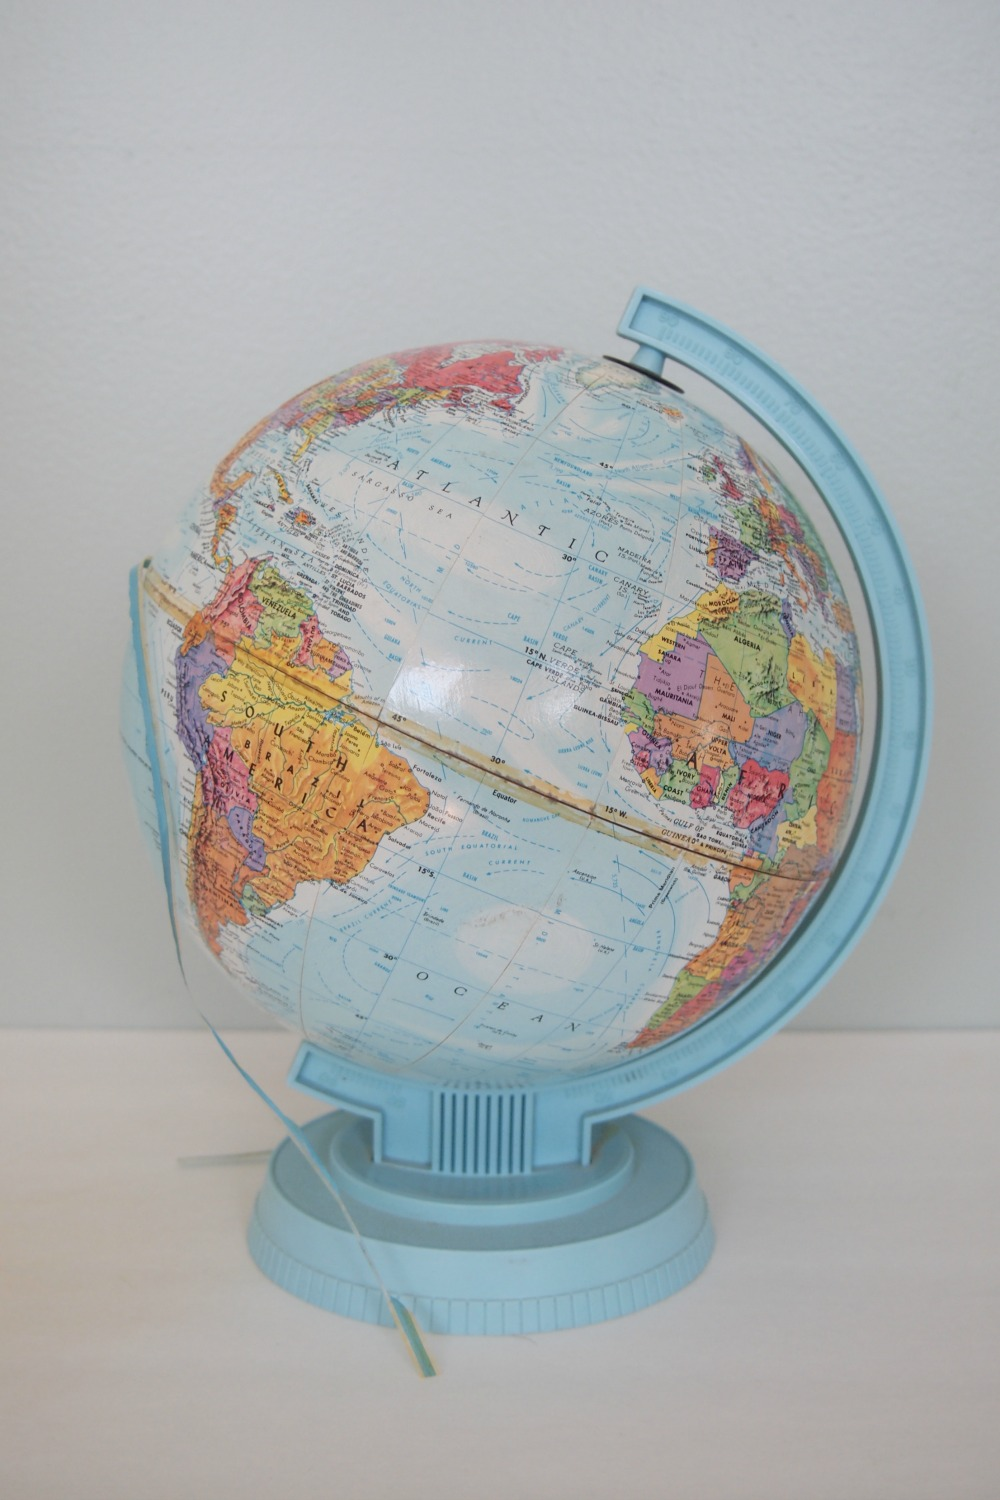 Globe before the makeover